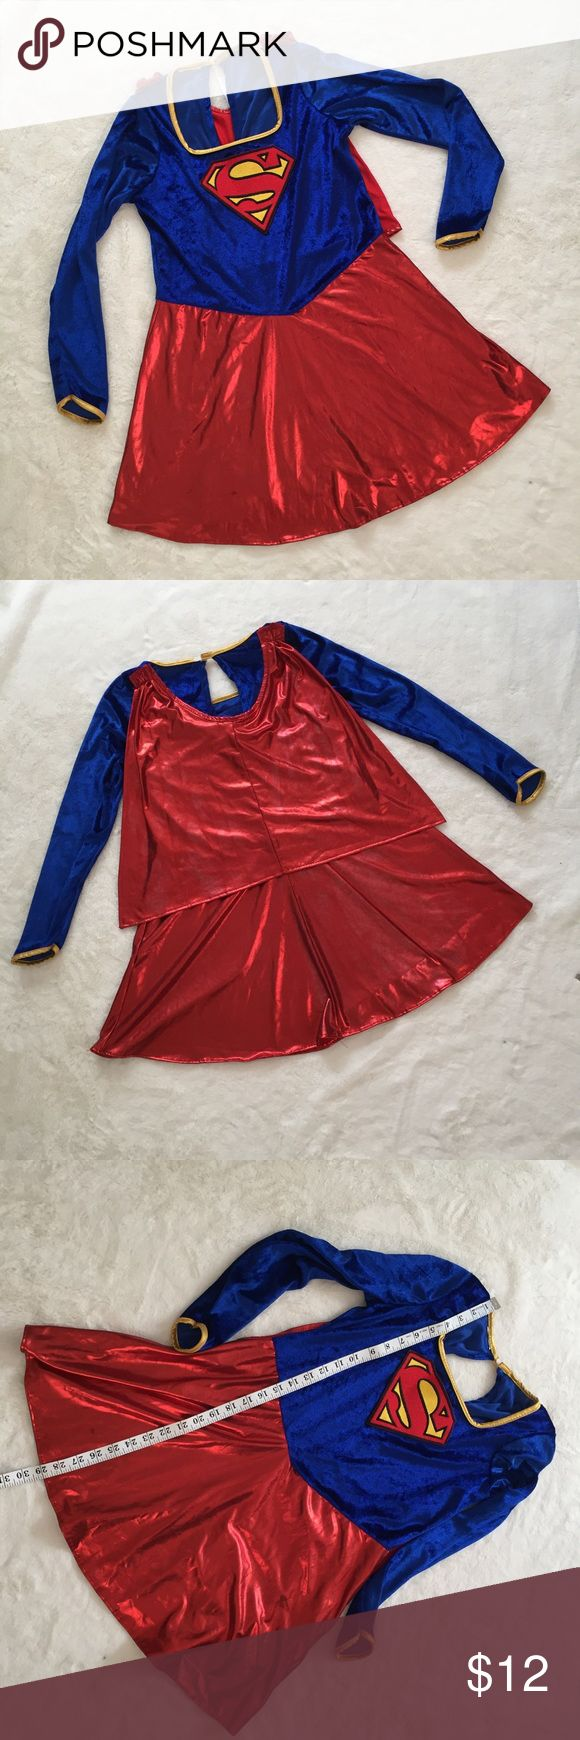 Superman costume only Large girls Gently used. Minor pulling fabric damage no cape only costume. Costumes Superhero